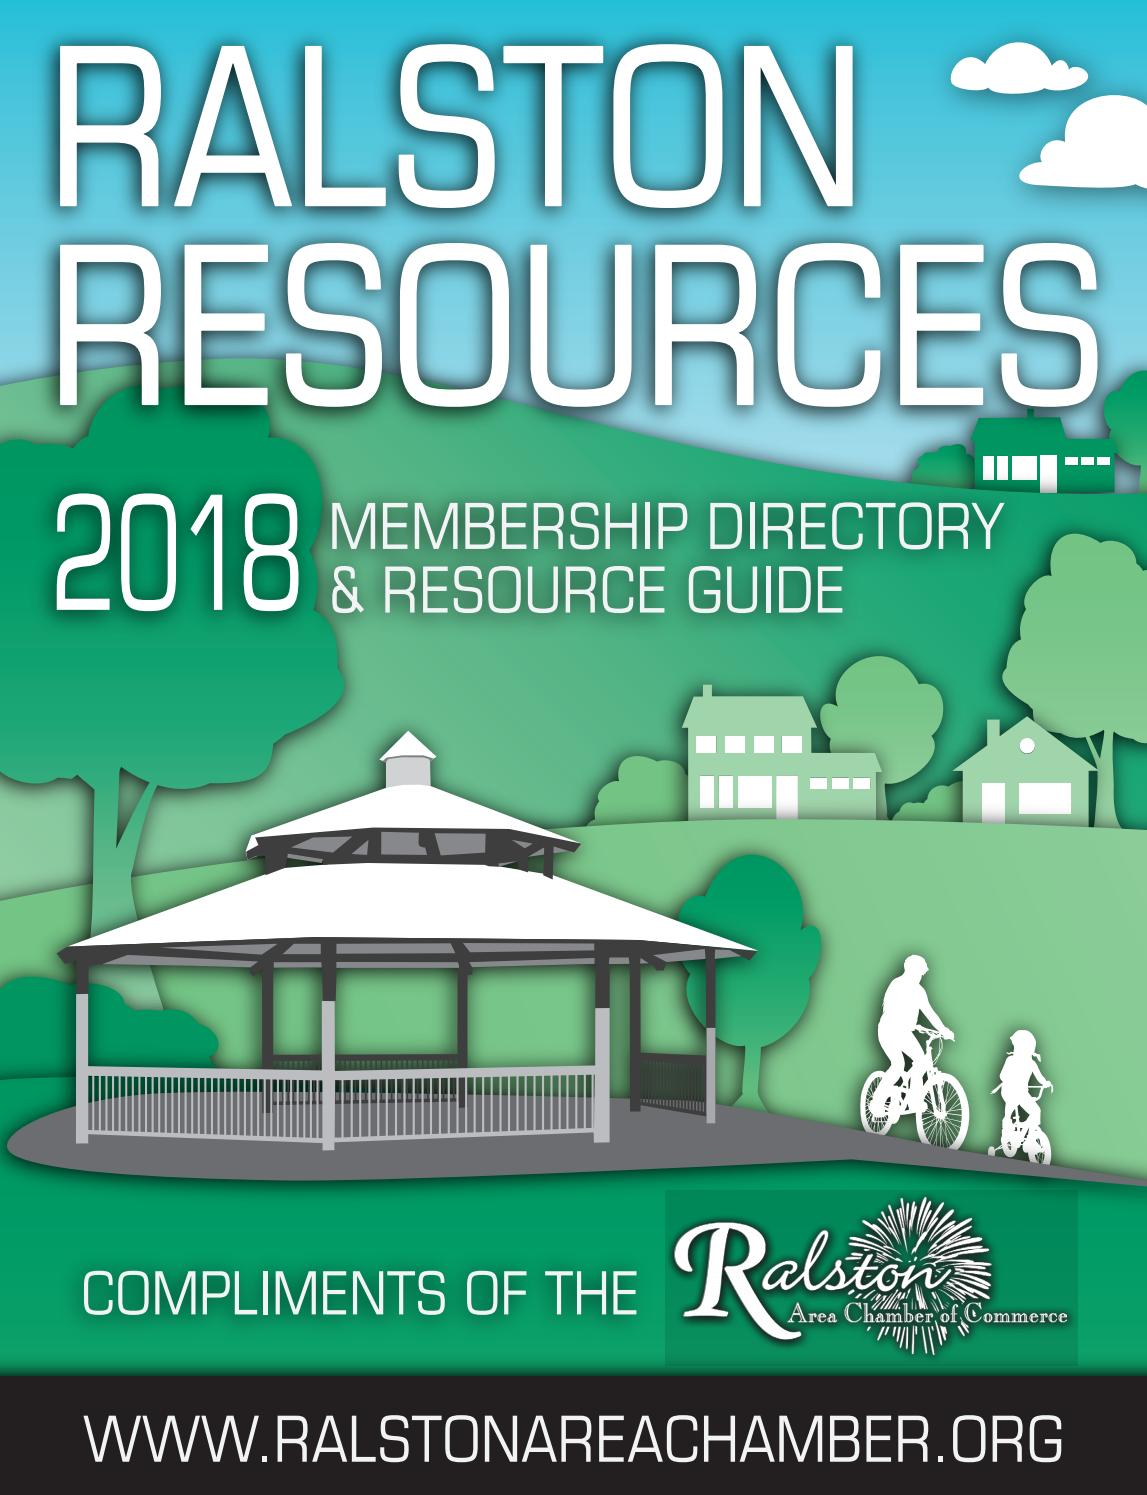 Ralston Resources By Suburban Newspapers Issuu